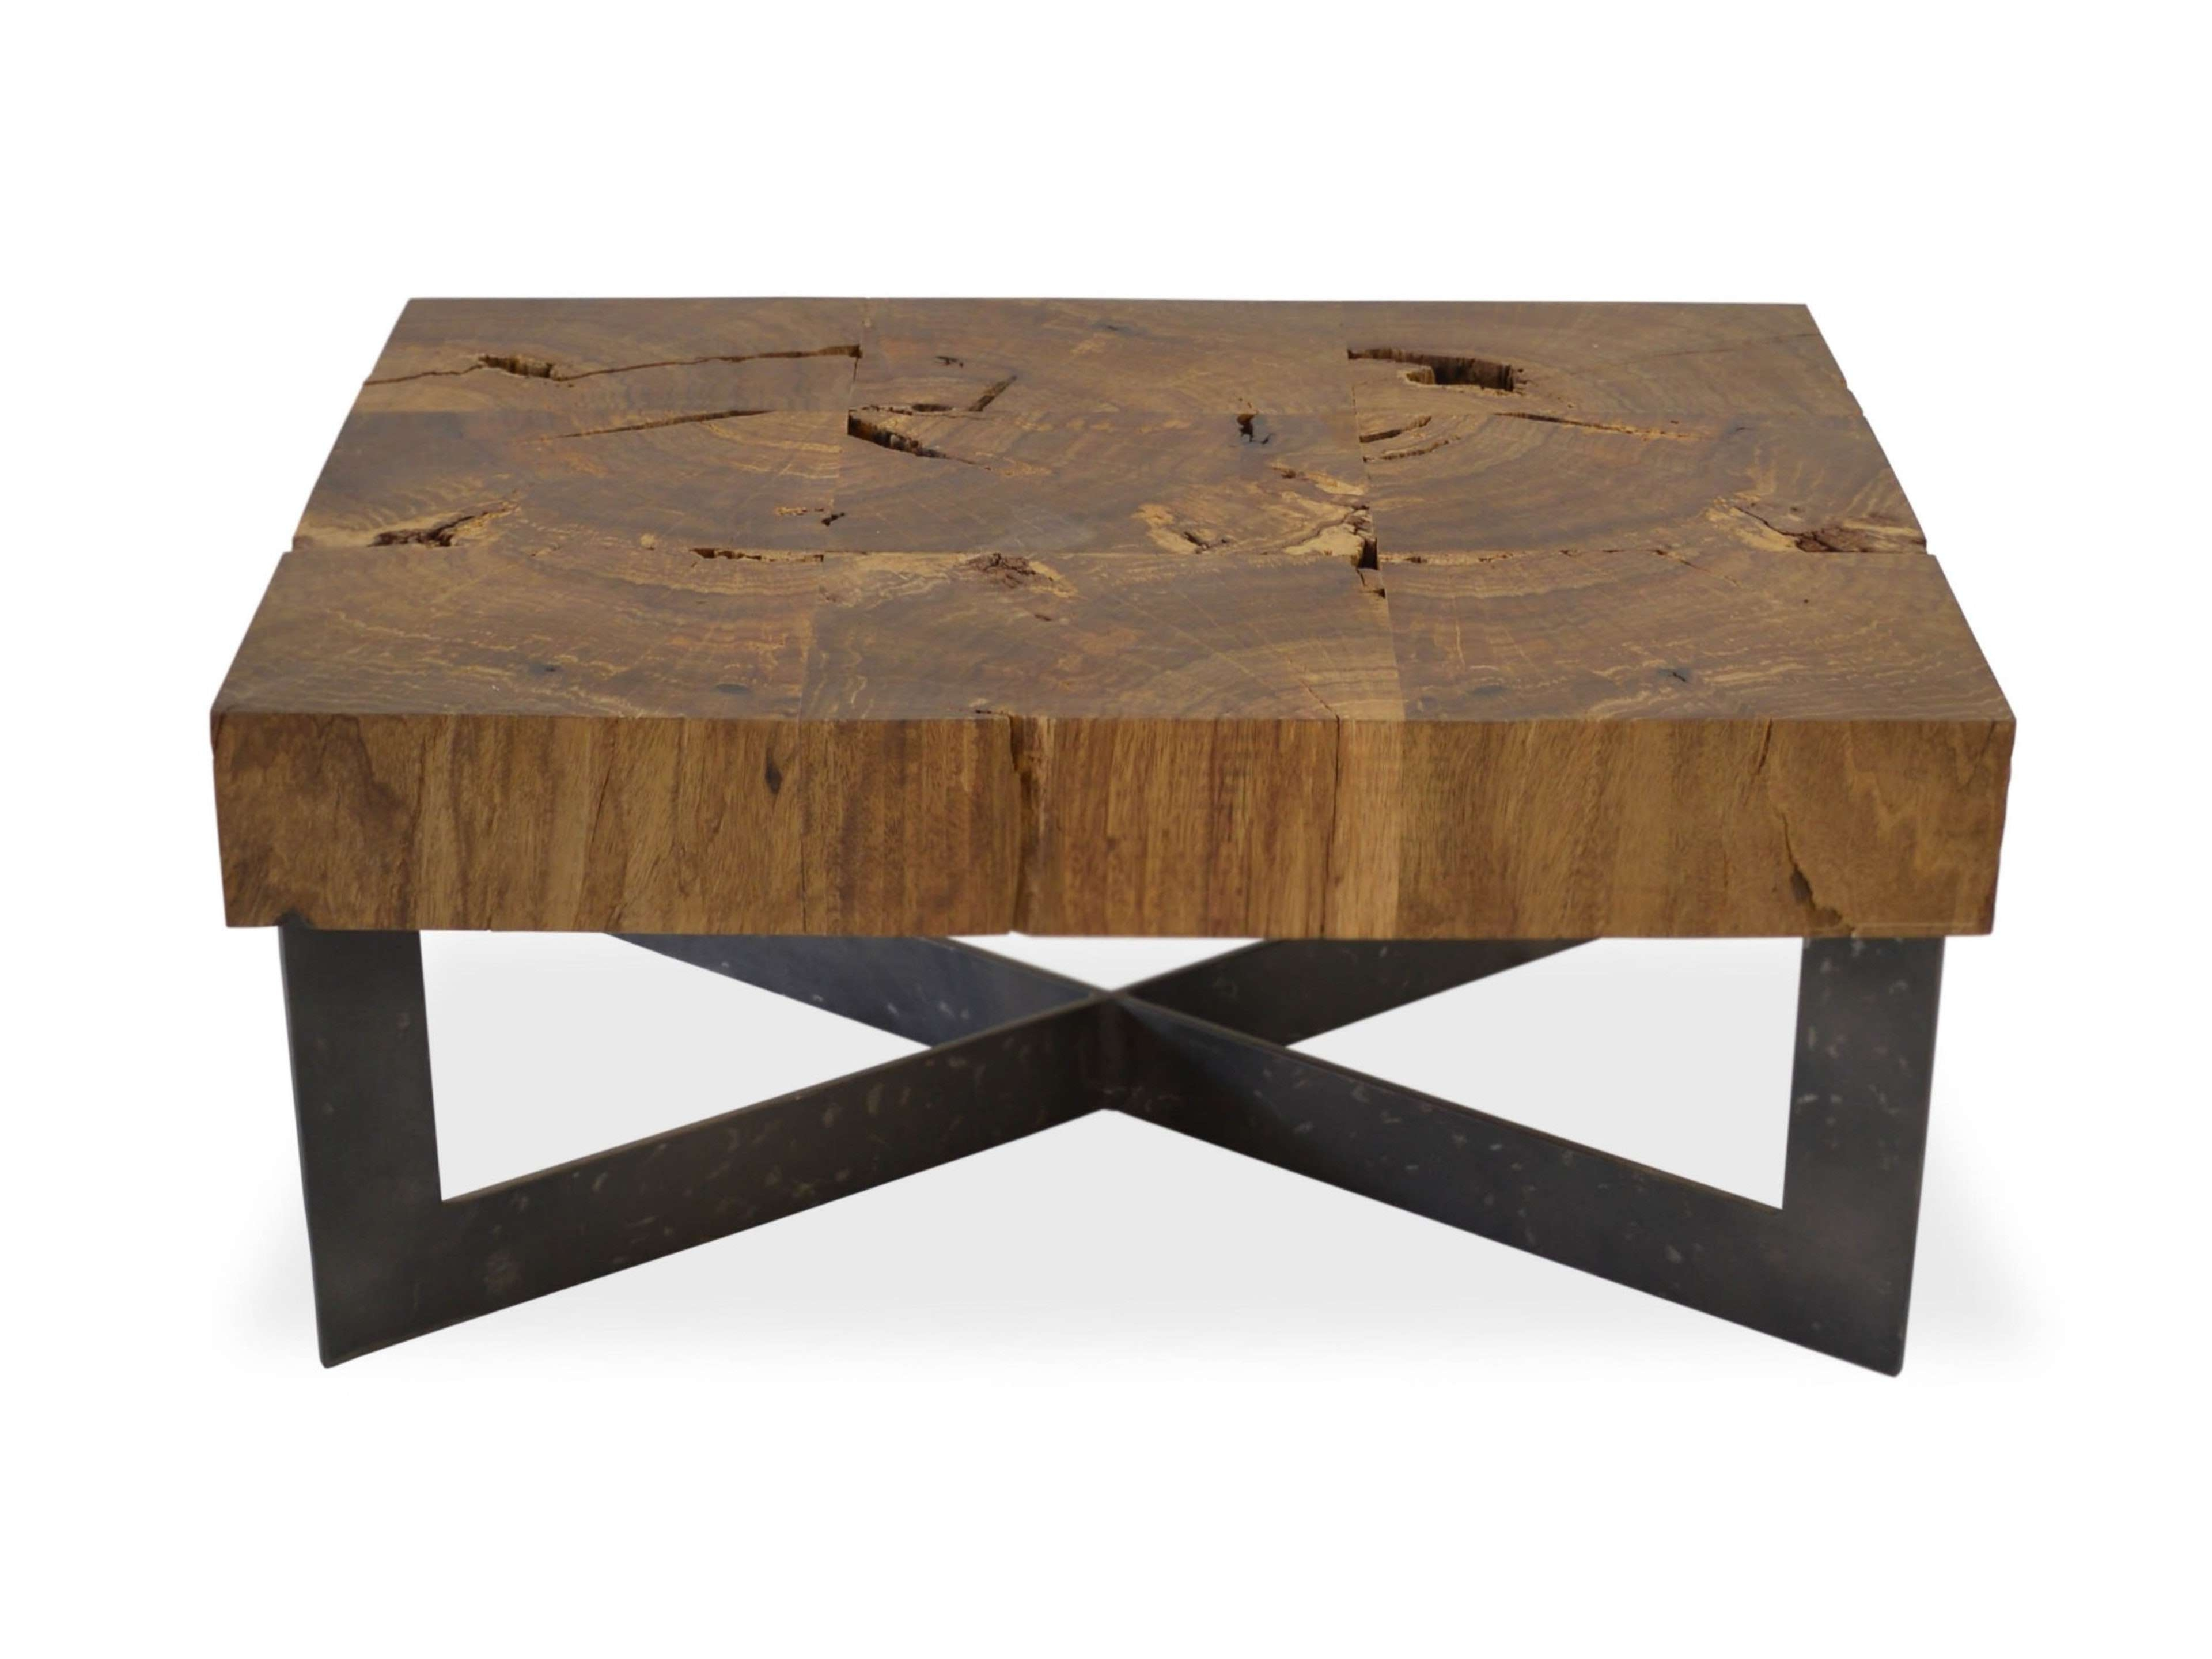 Well Liked Wood And Steel Coffee Table Pertaining To Coffee Tables : Reclaimed Wood Mosaic Coffee Table Metal Base (View 20 of 20)